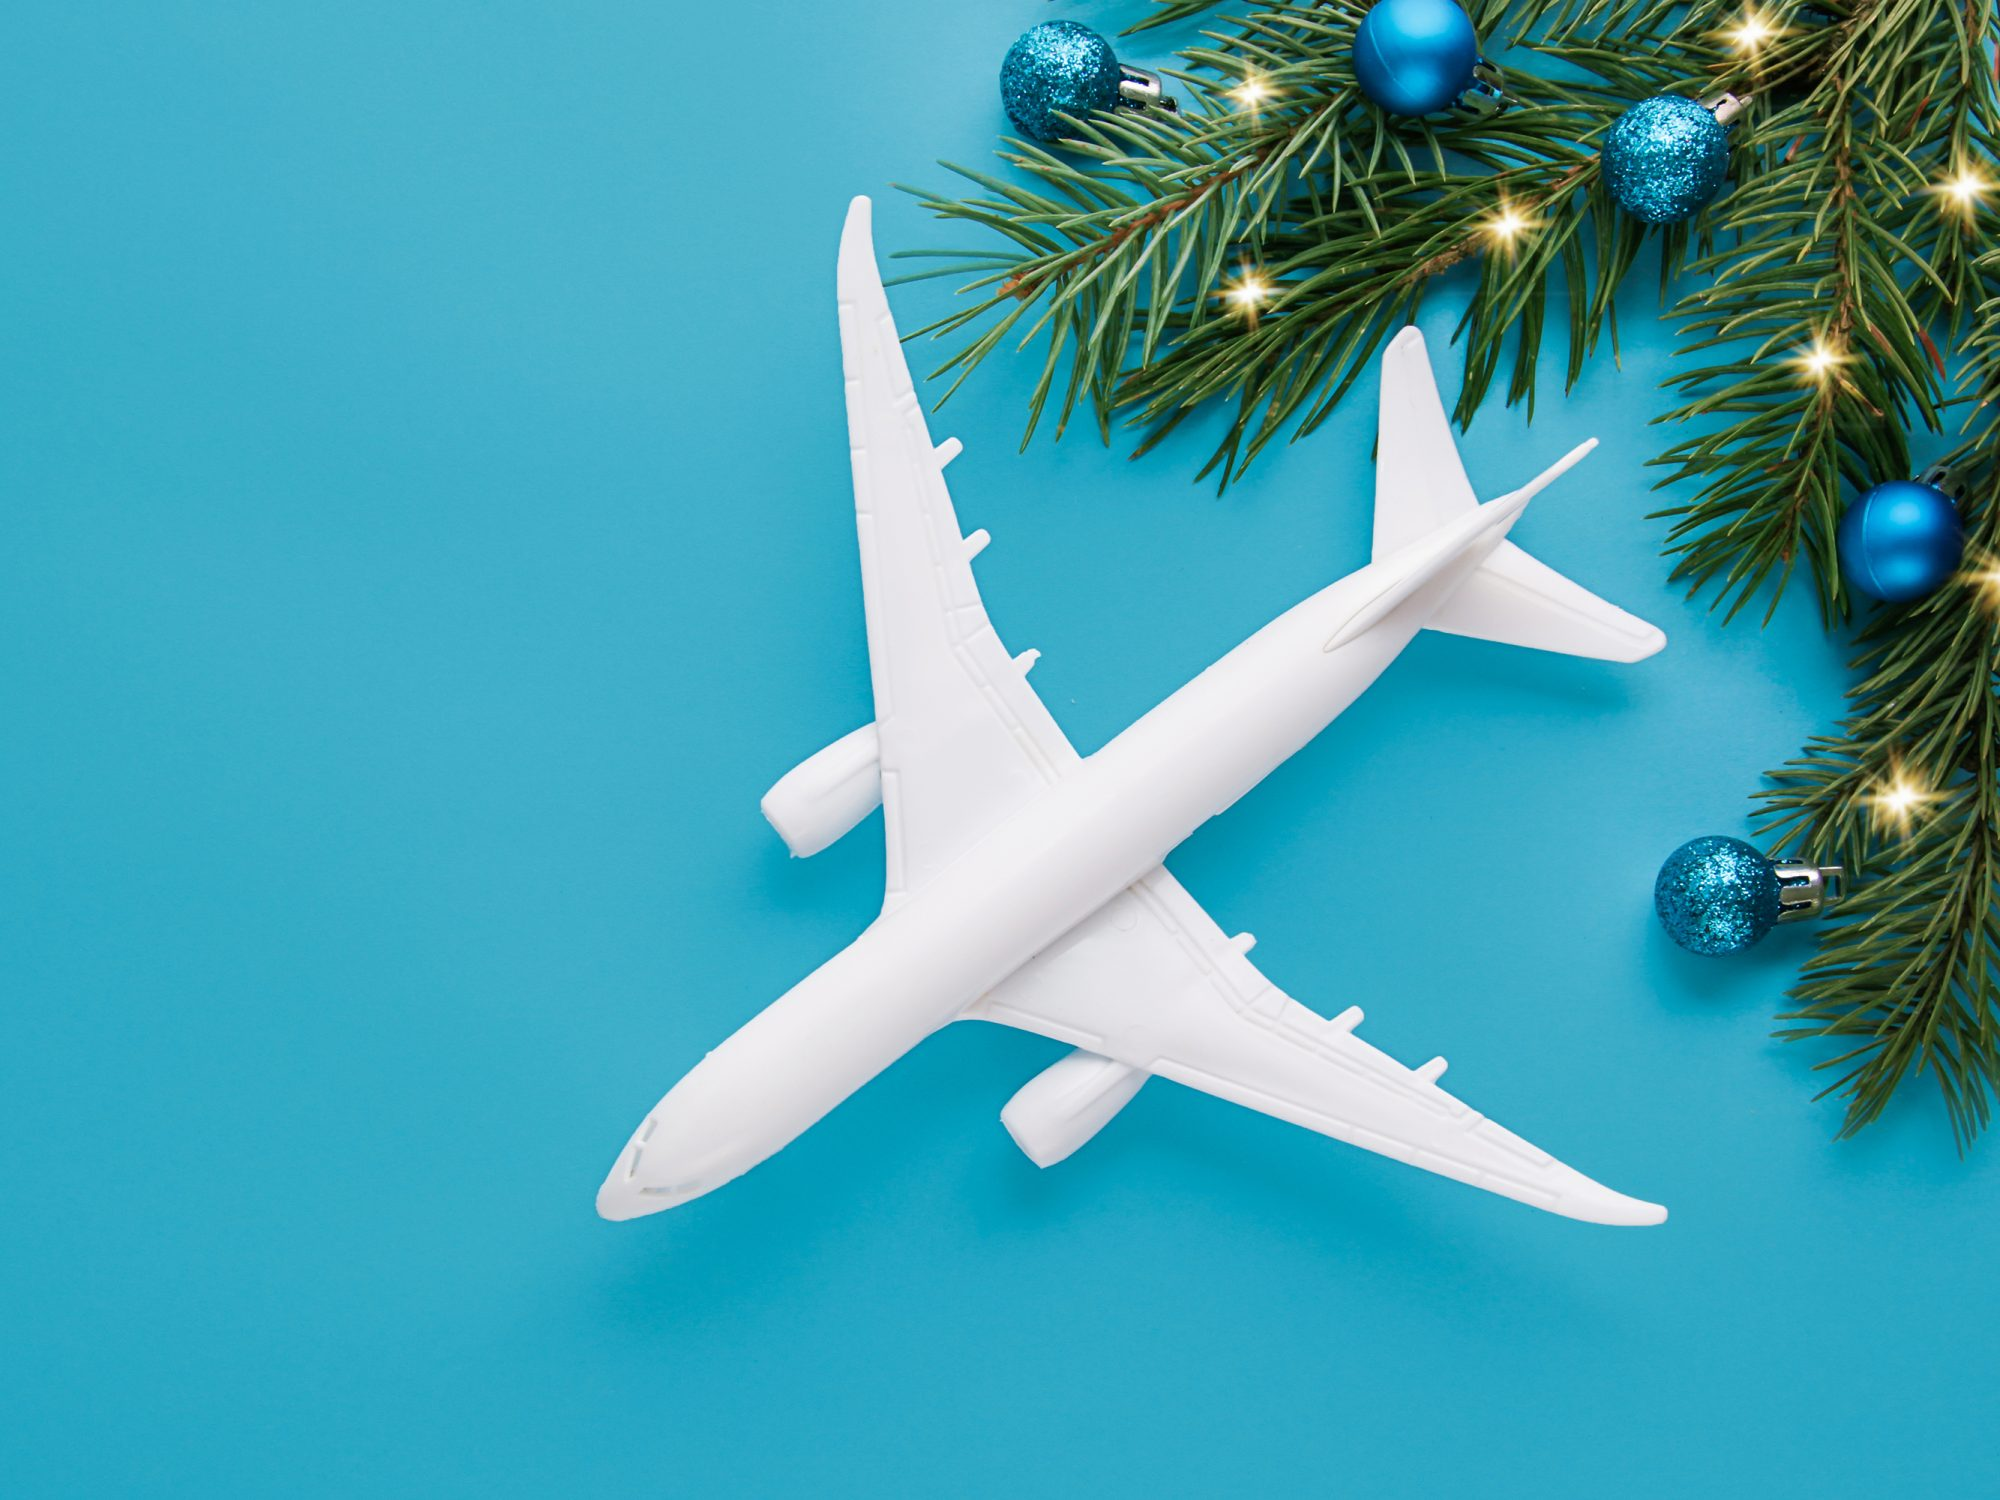 Christmas travel planning. Traveling as gift. White blank model of passenger plane and gift box on background. Top view or flat lay.